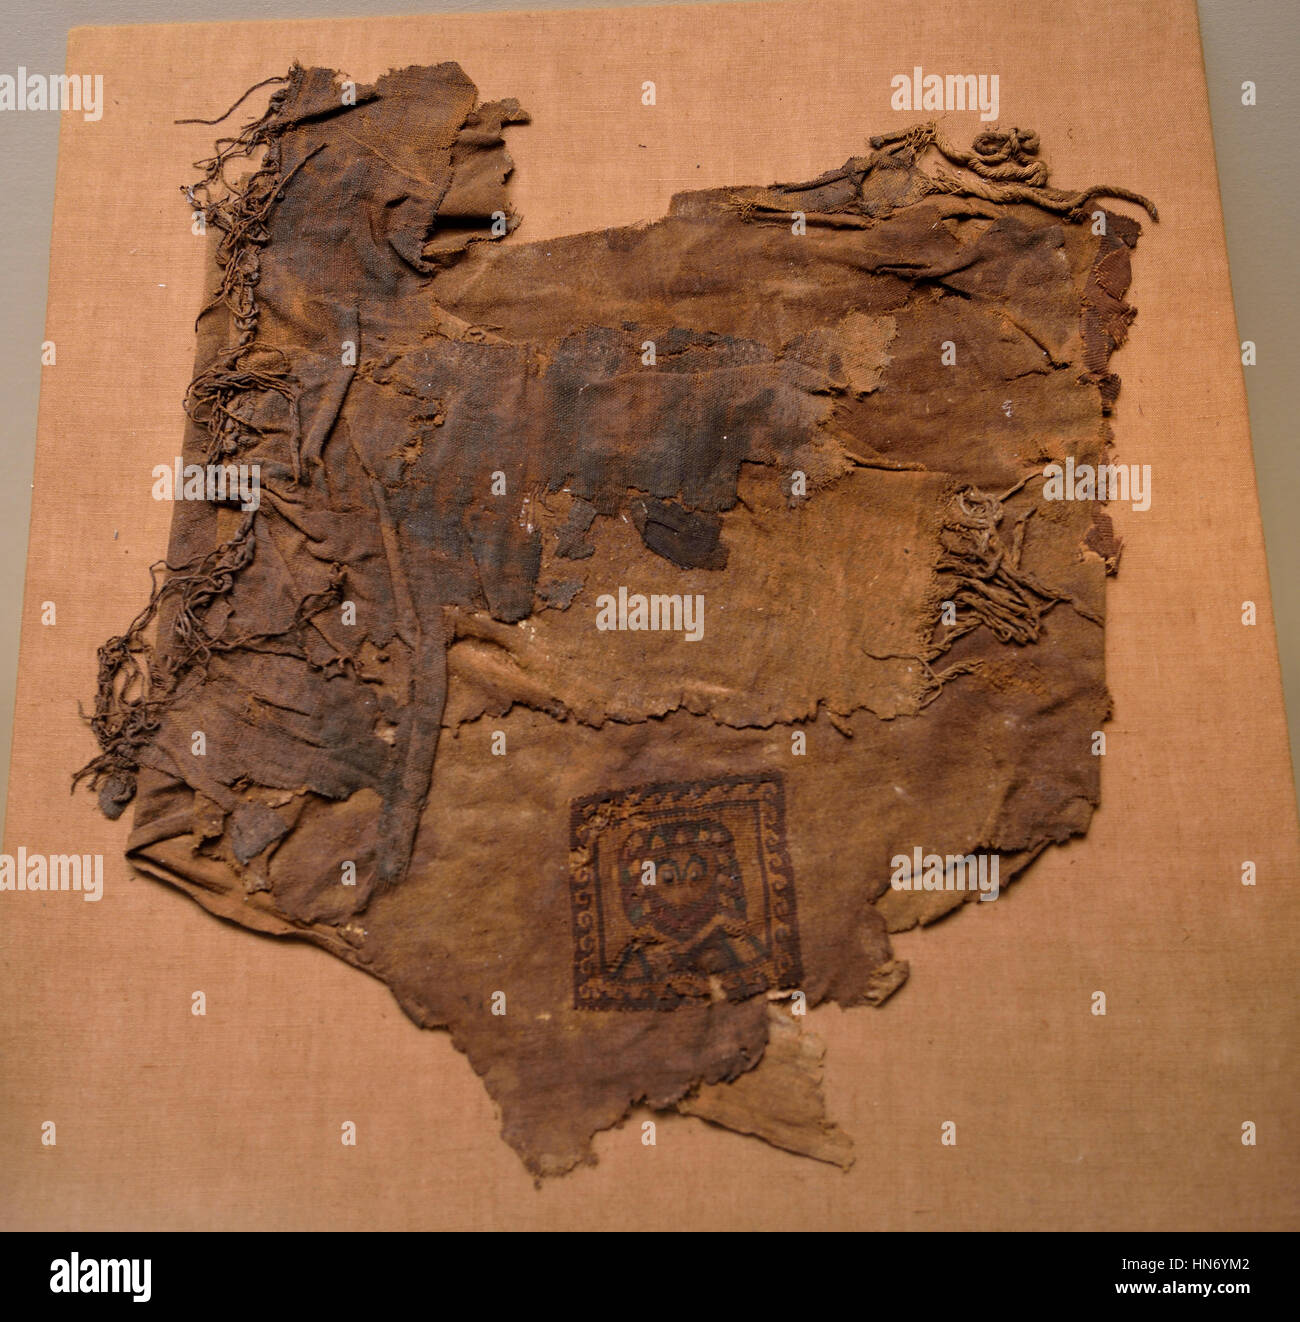 Fragment of leather and cloth. Mada'in Saleh. 3rd century BCE-3rd century CE. Textile and leather. Al-'Ula - Stock Image